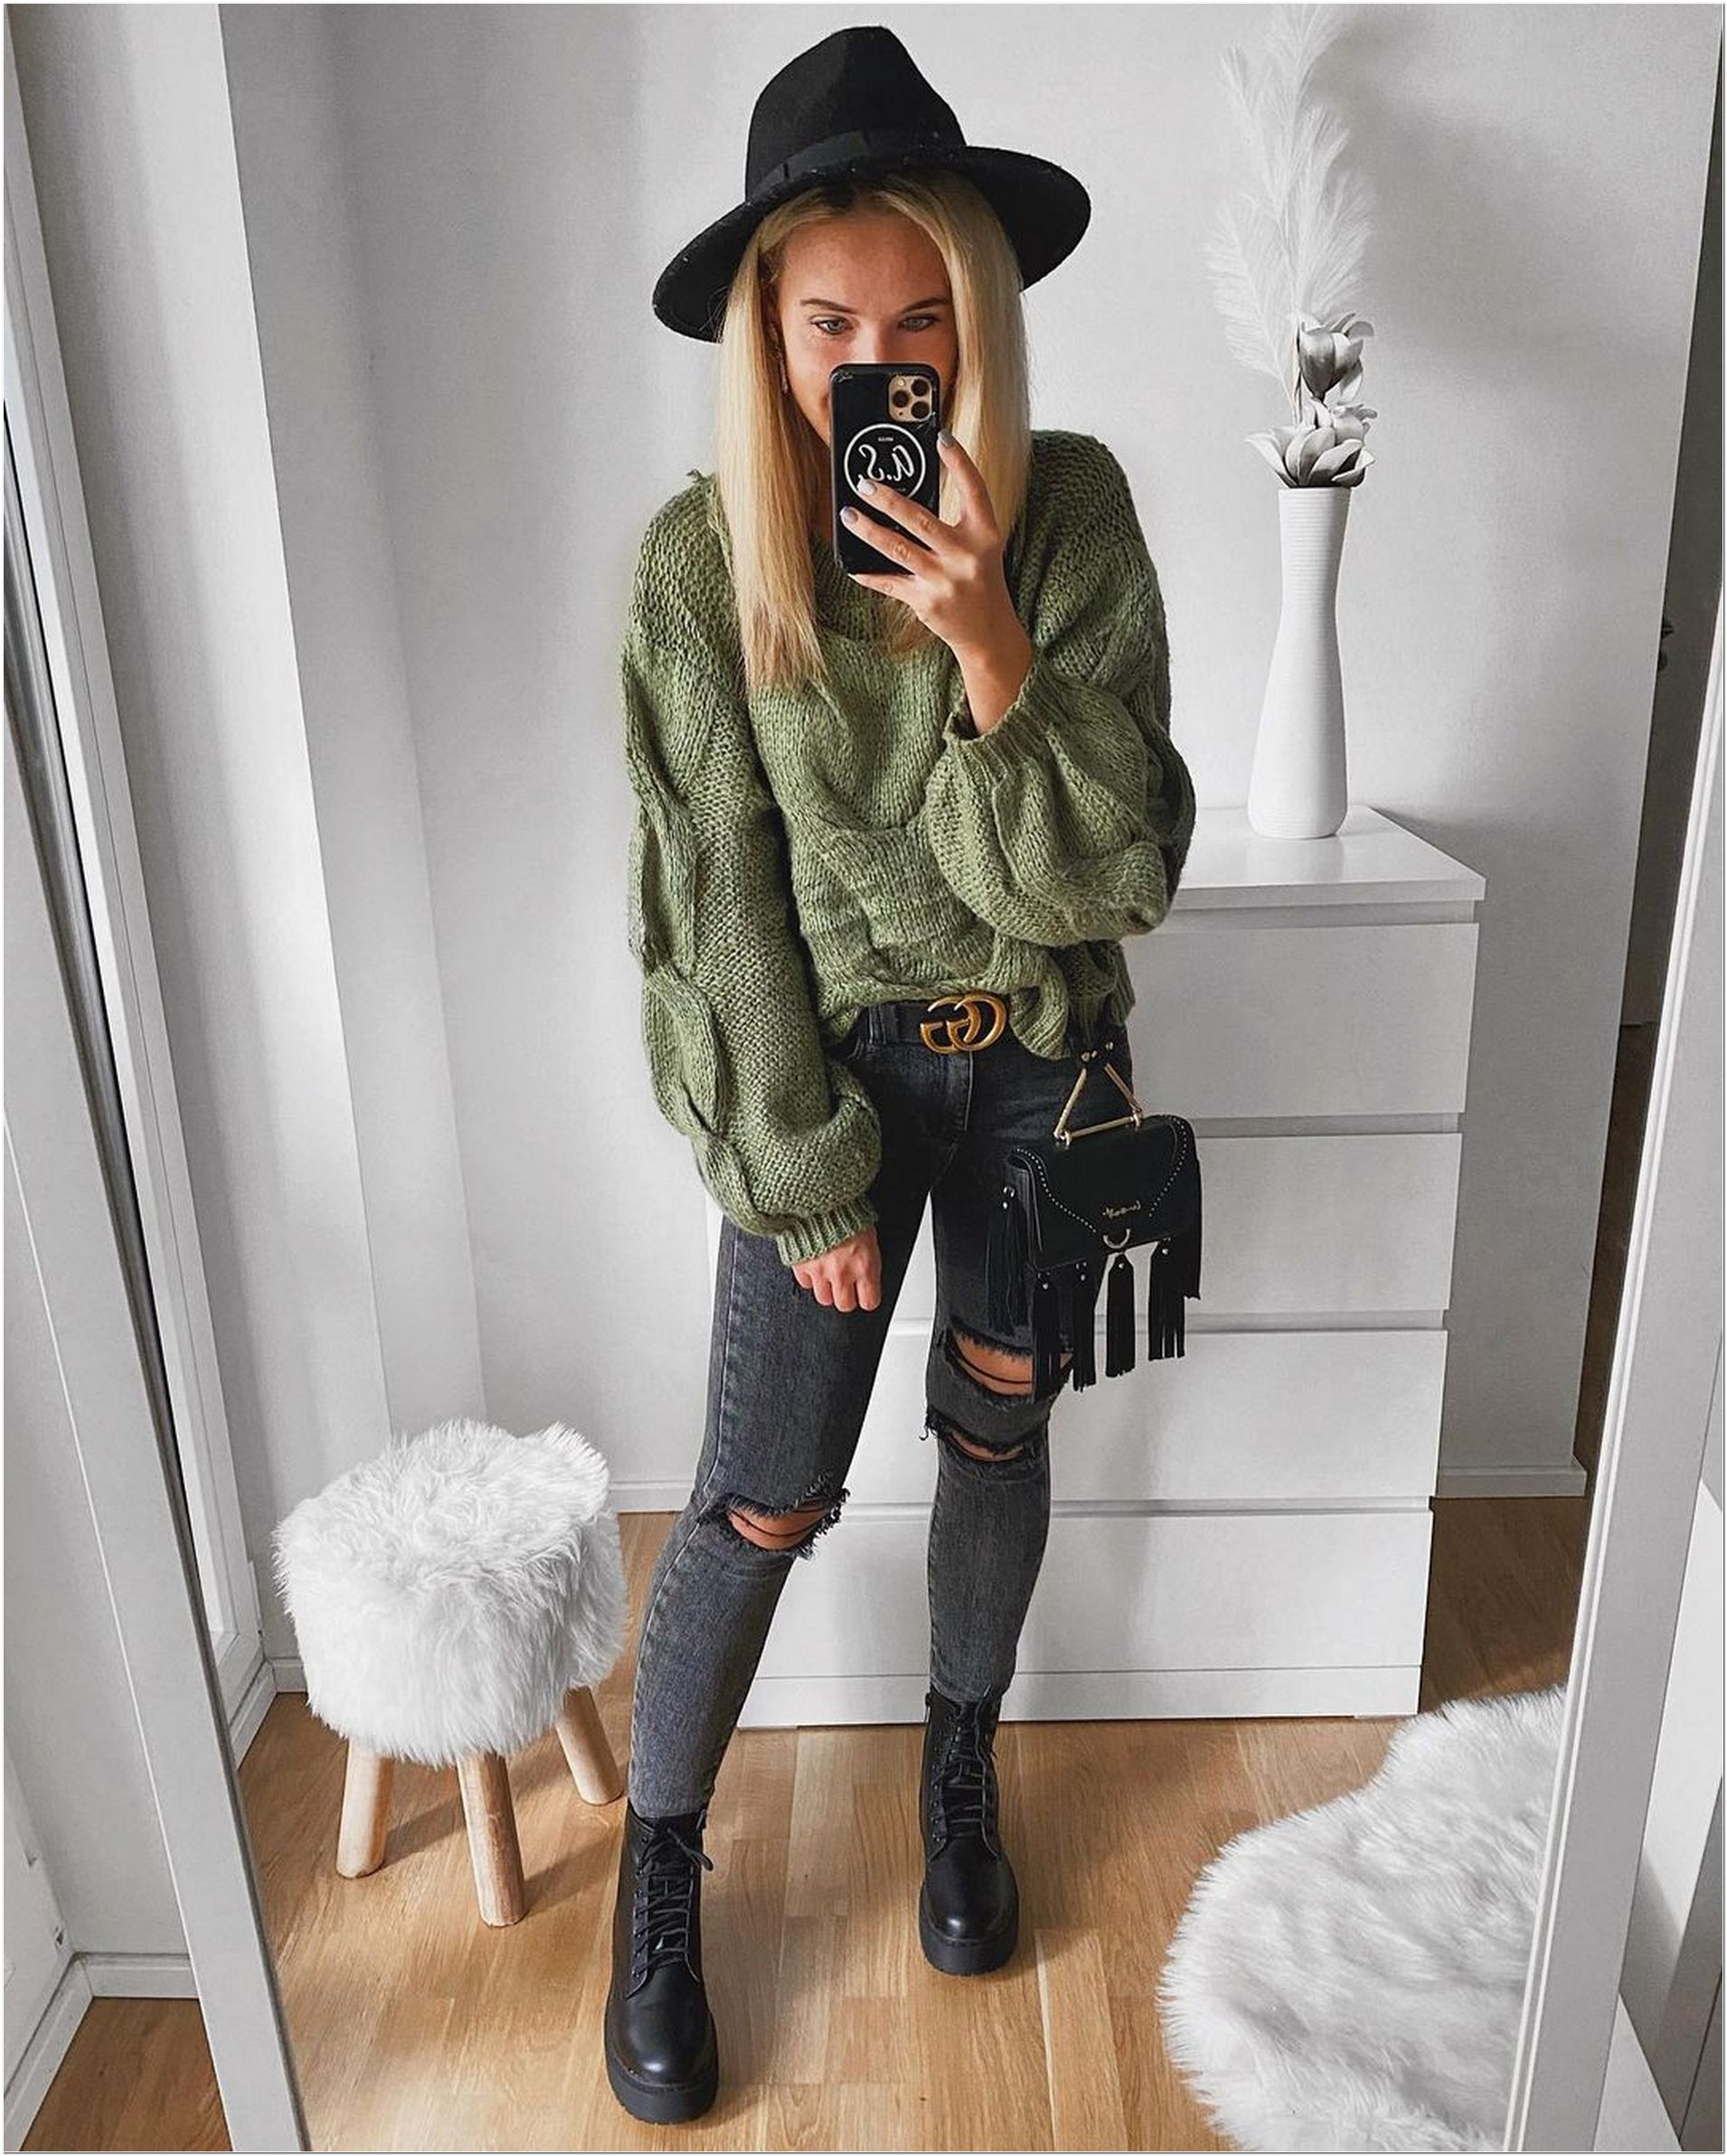 Men's and Women's Winter Outfits Ideas - Why You Must Buy These!